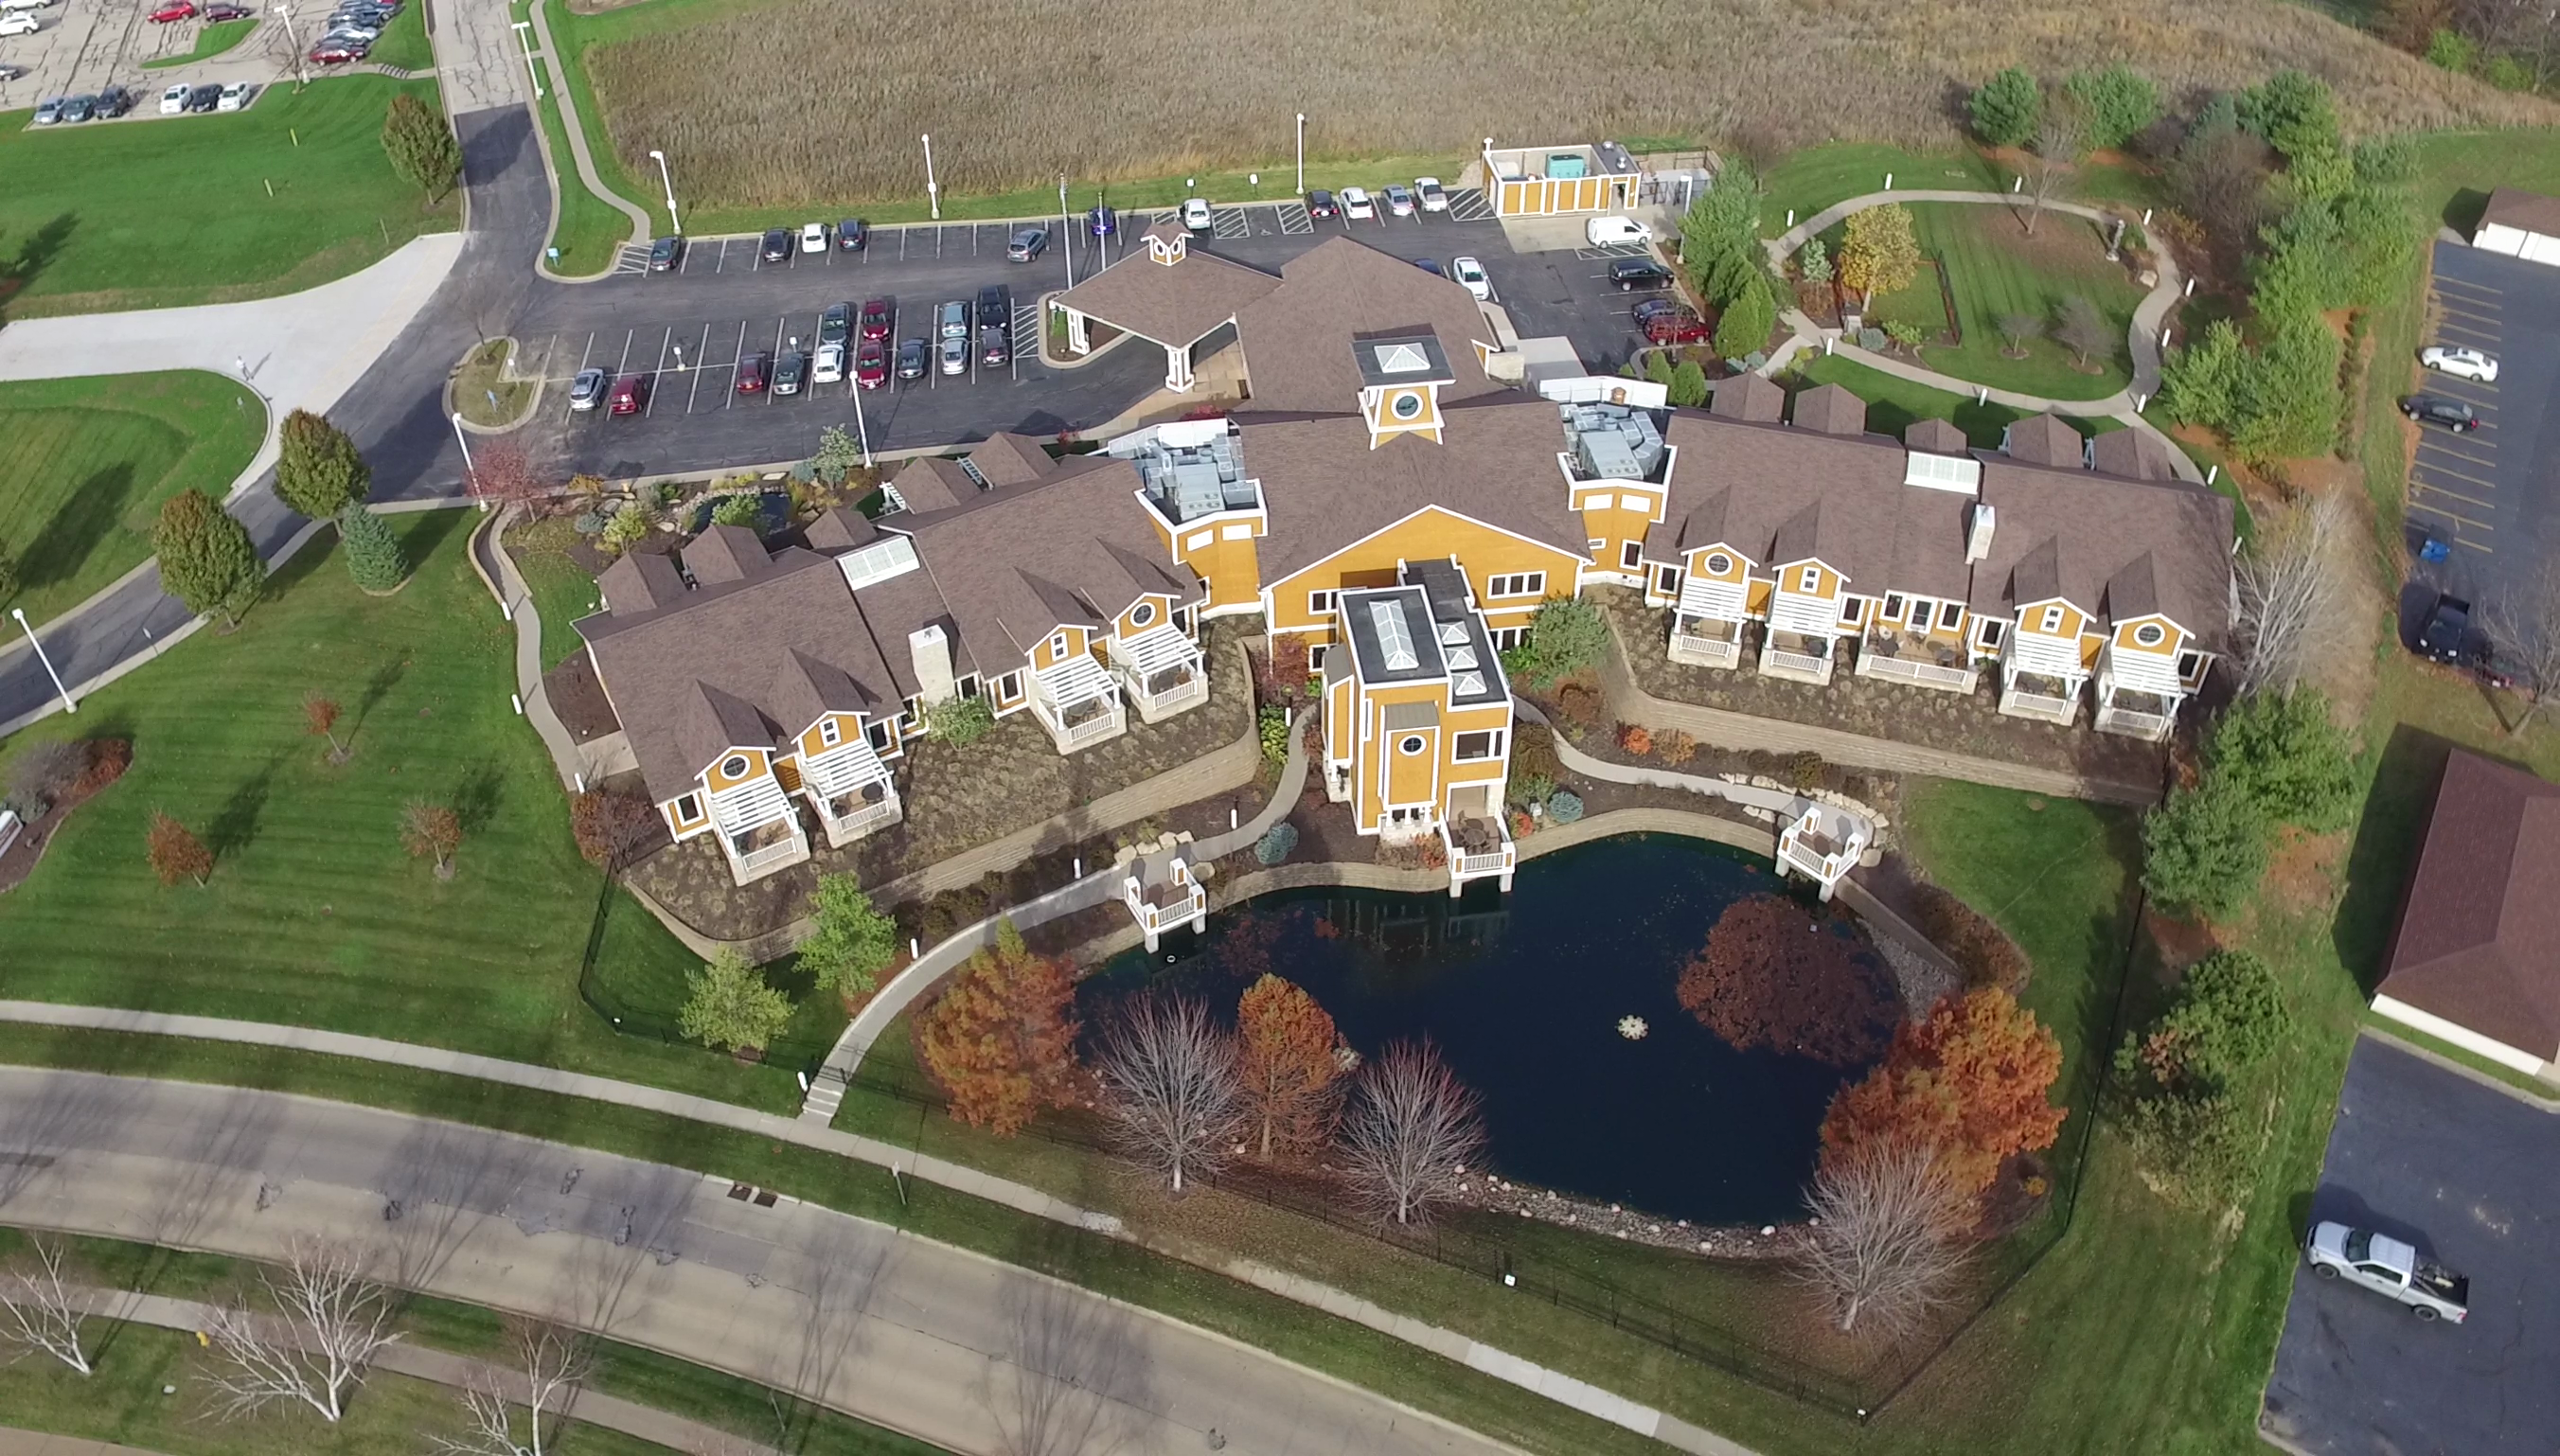 The Clarissa C. Cook Hospice House opens in Bettendorf, Iowa. Charitable contributions exceeding $7.6 million to the Genesis Foundation, including lead gifts from the Clarissa C. Cook Retirement Home and the Visiting Nurse Association, bring the house to life.